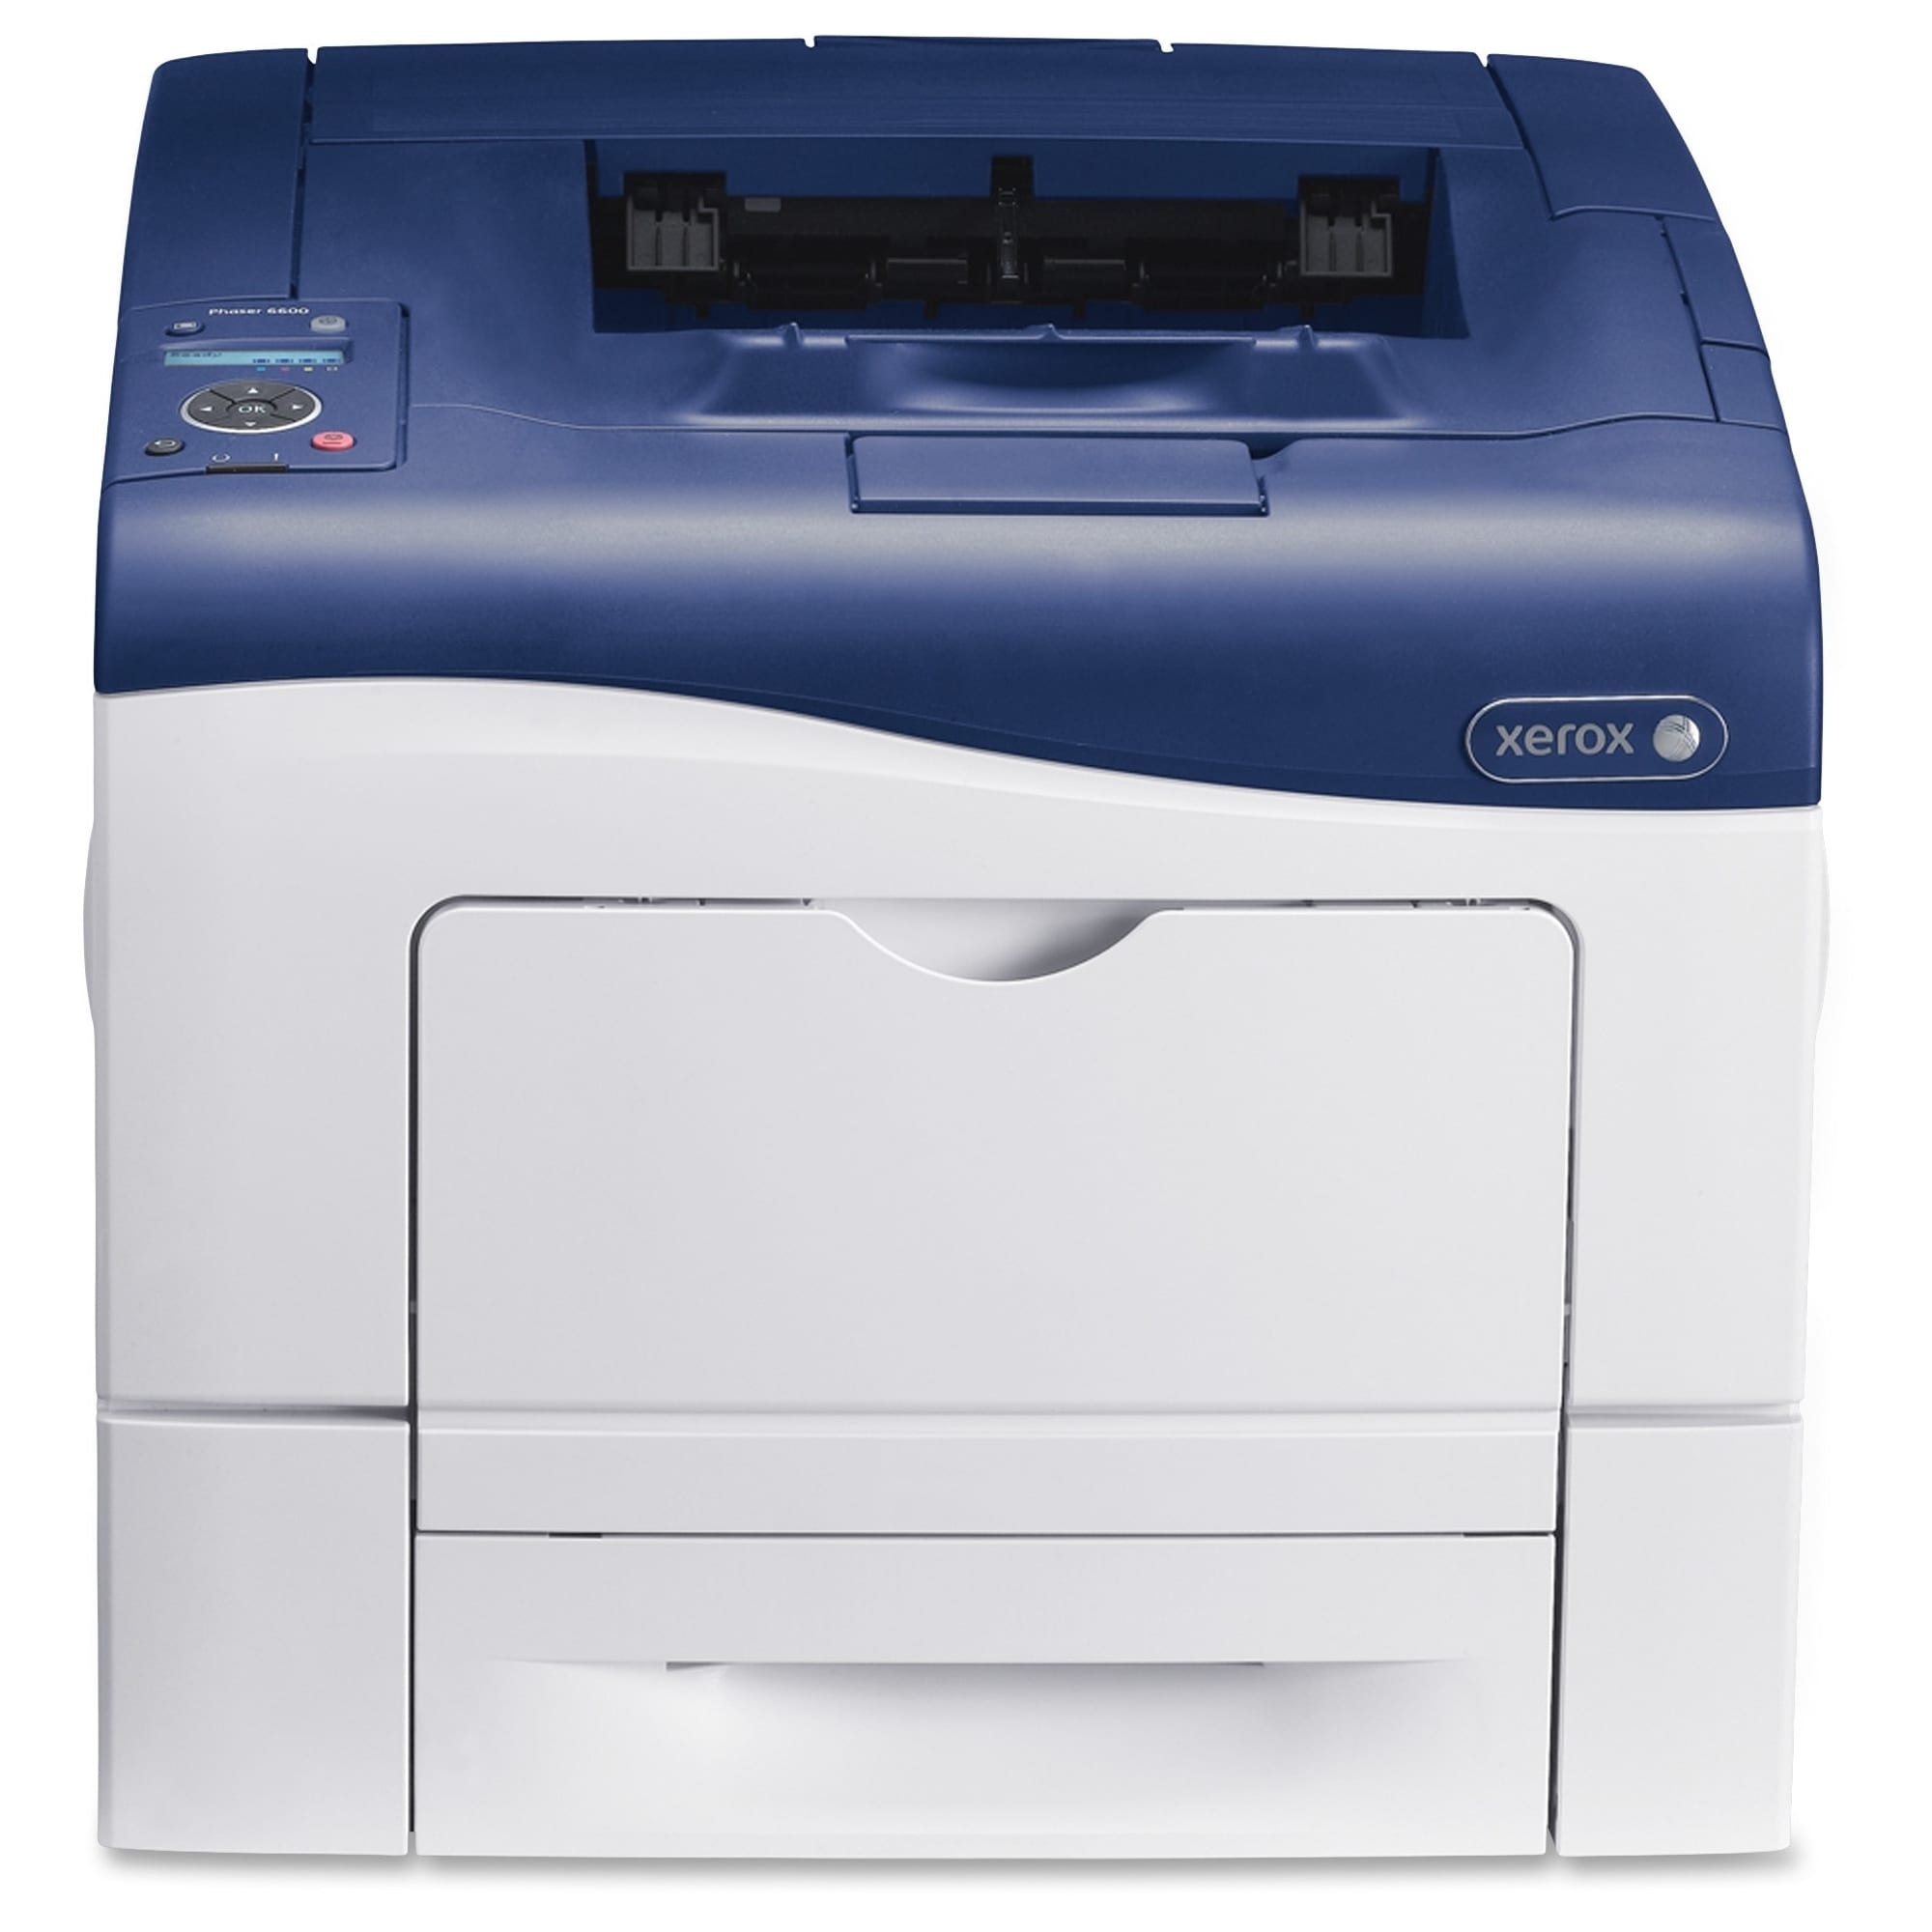 Xerox Phaser 6600 N Laser Printer Color 1200 X Dpi Print P